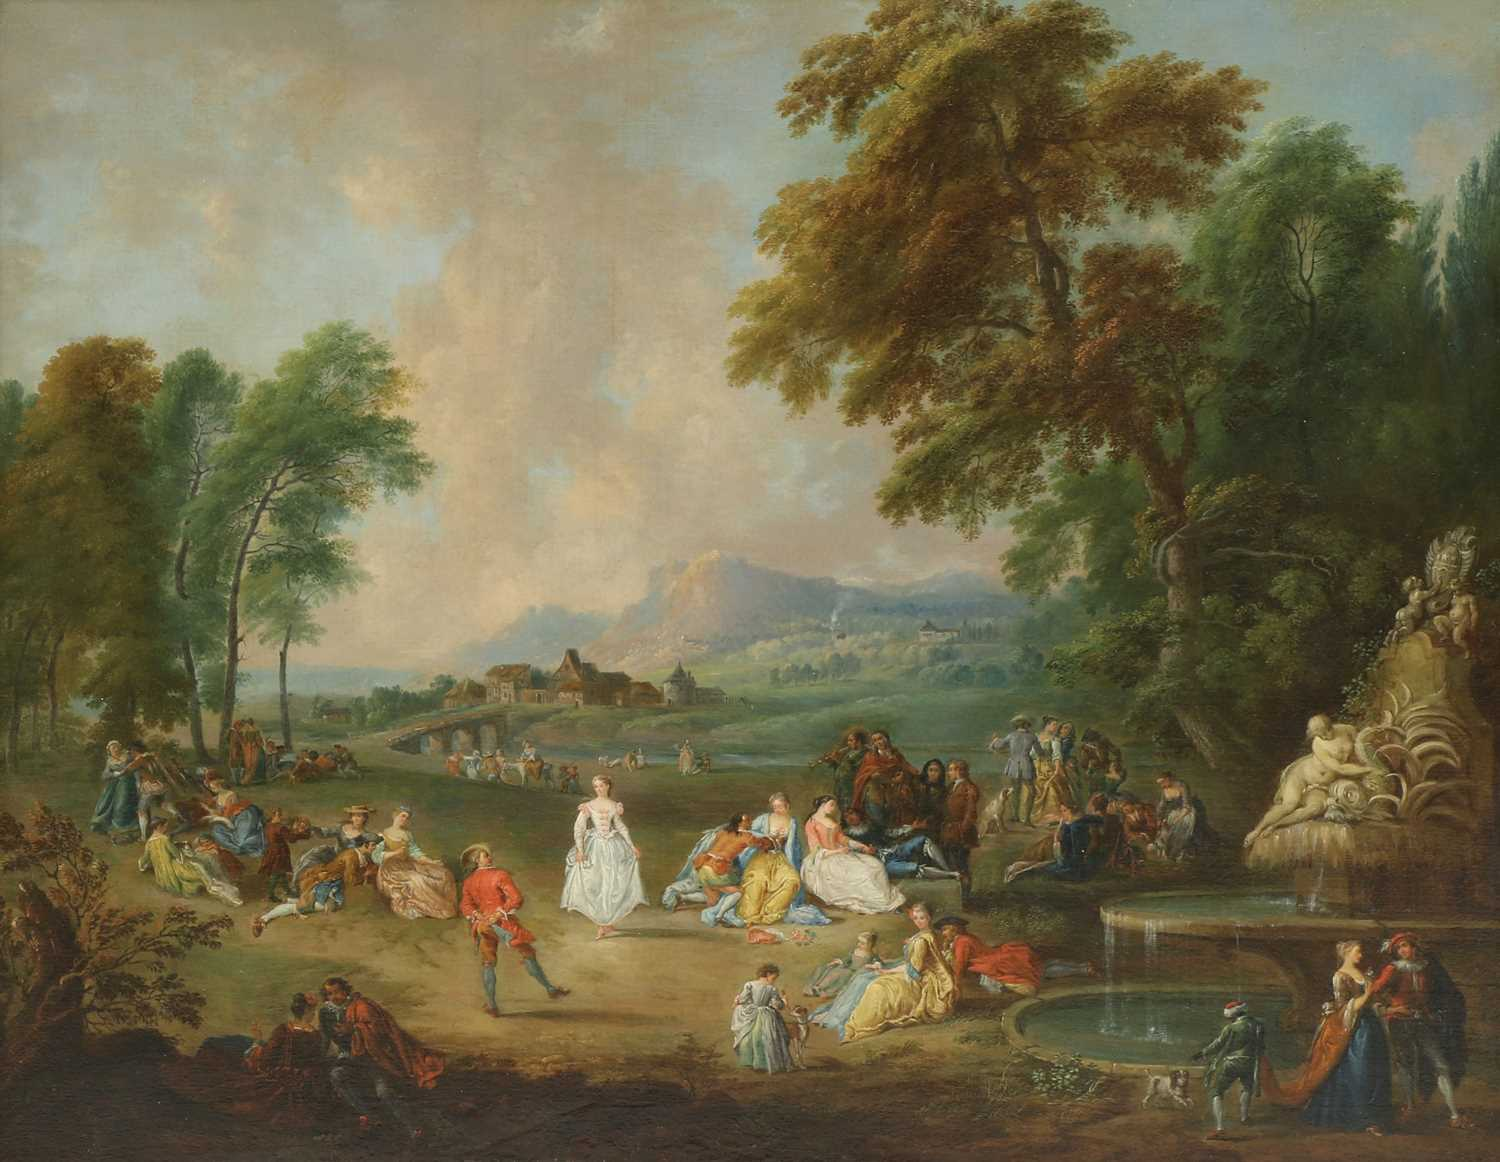 Lot Bonaventure de Bar (French, 1700-1729)